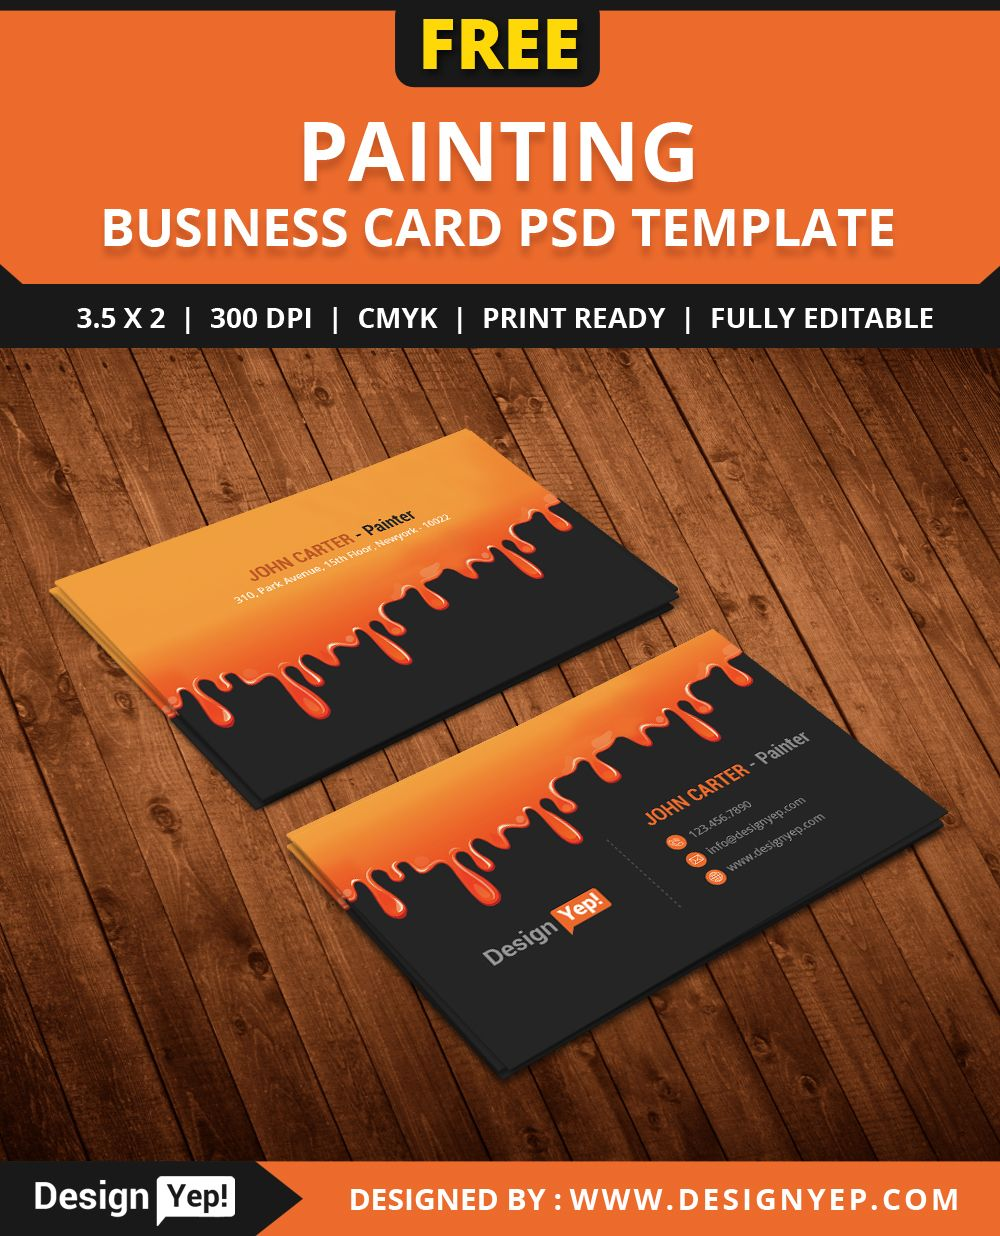 Free painting business card psd template free business card free painting business card psd template fbccfo